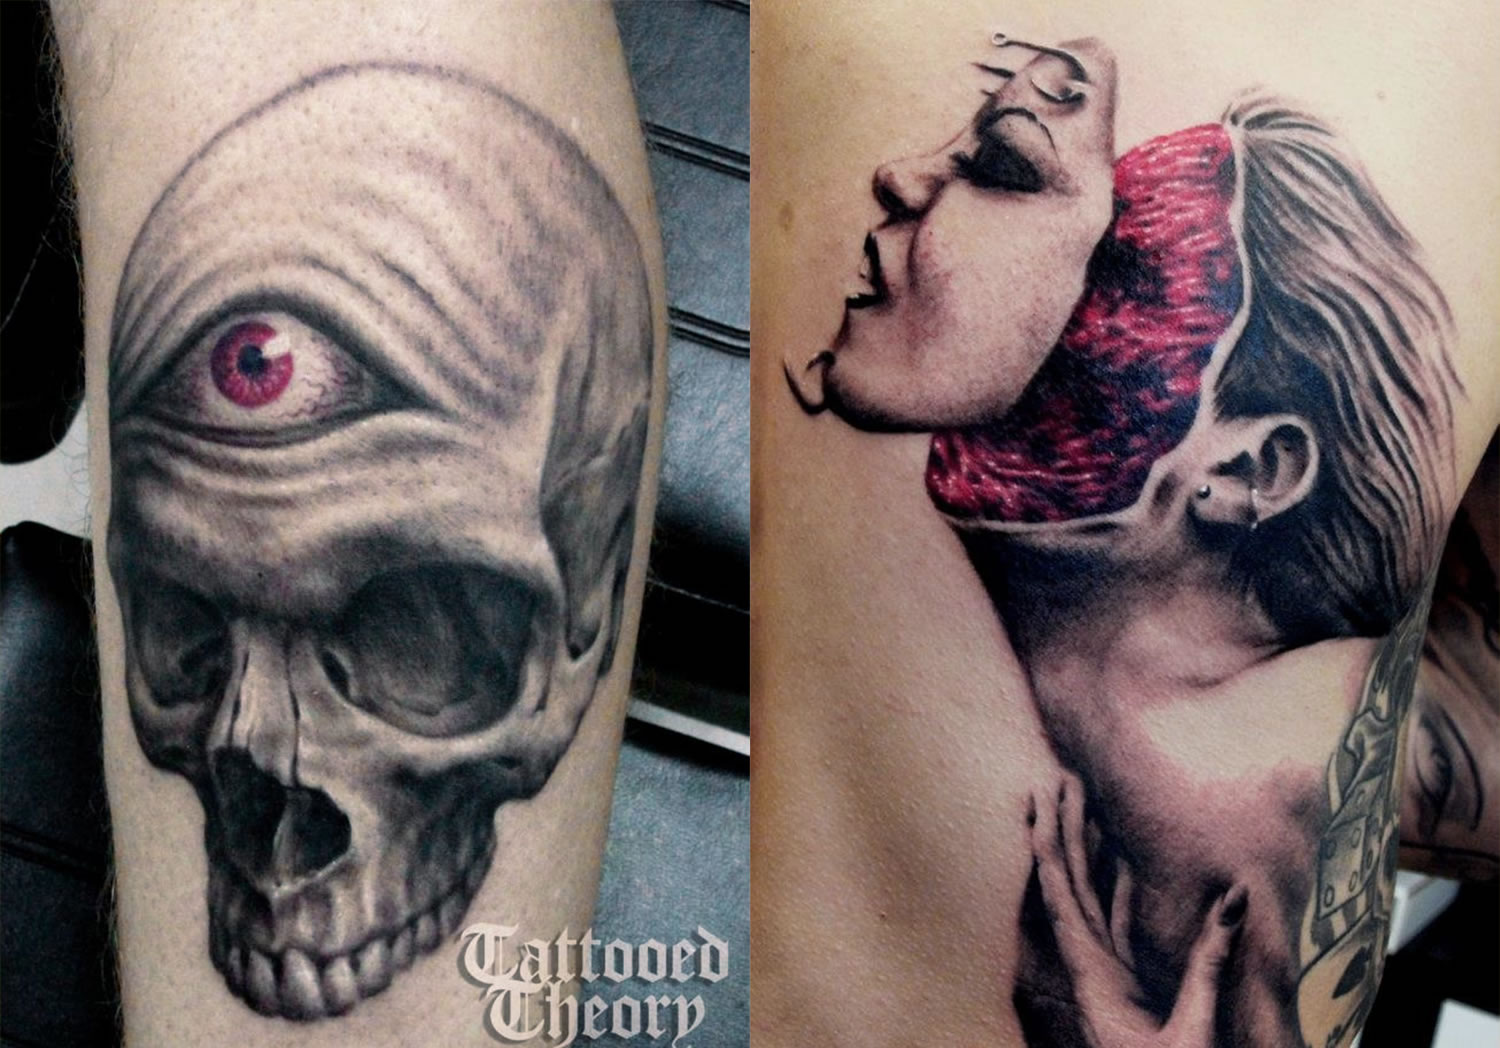 skull with cyclop eye and woman's faced teared off tattoos